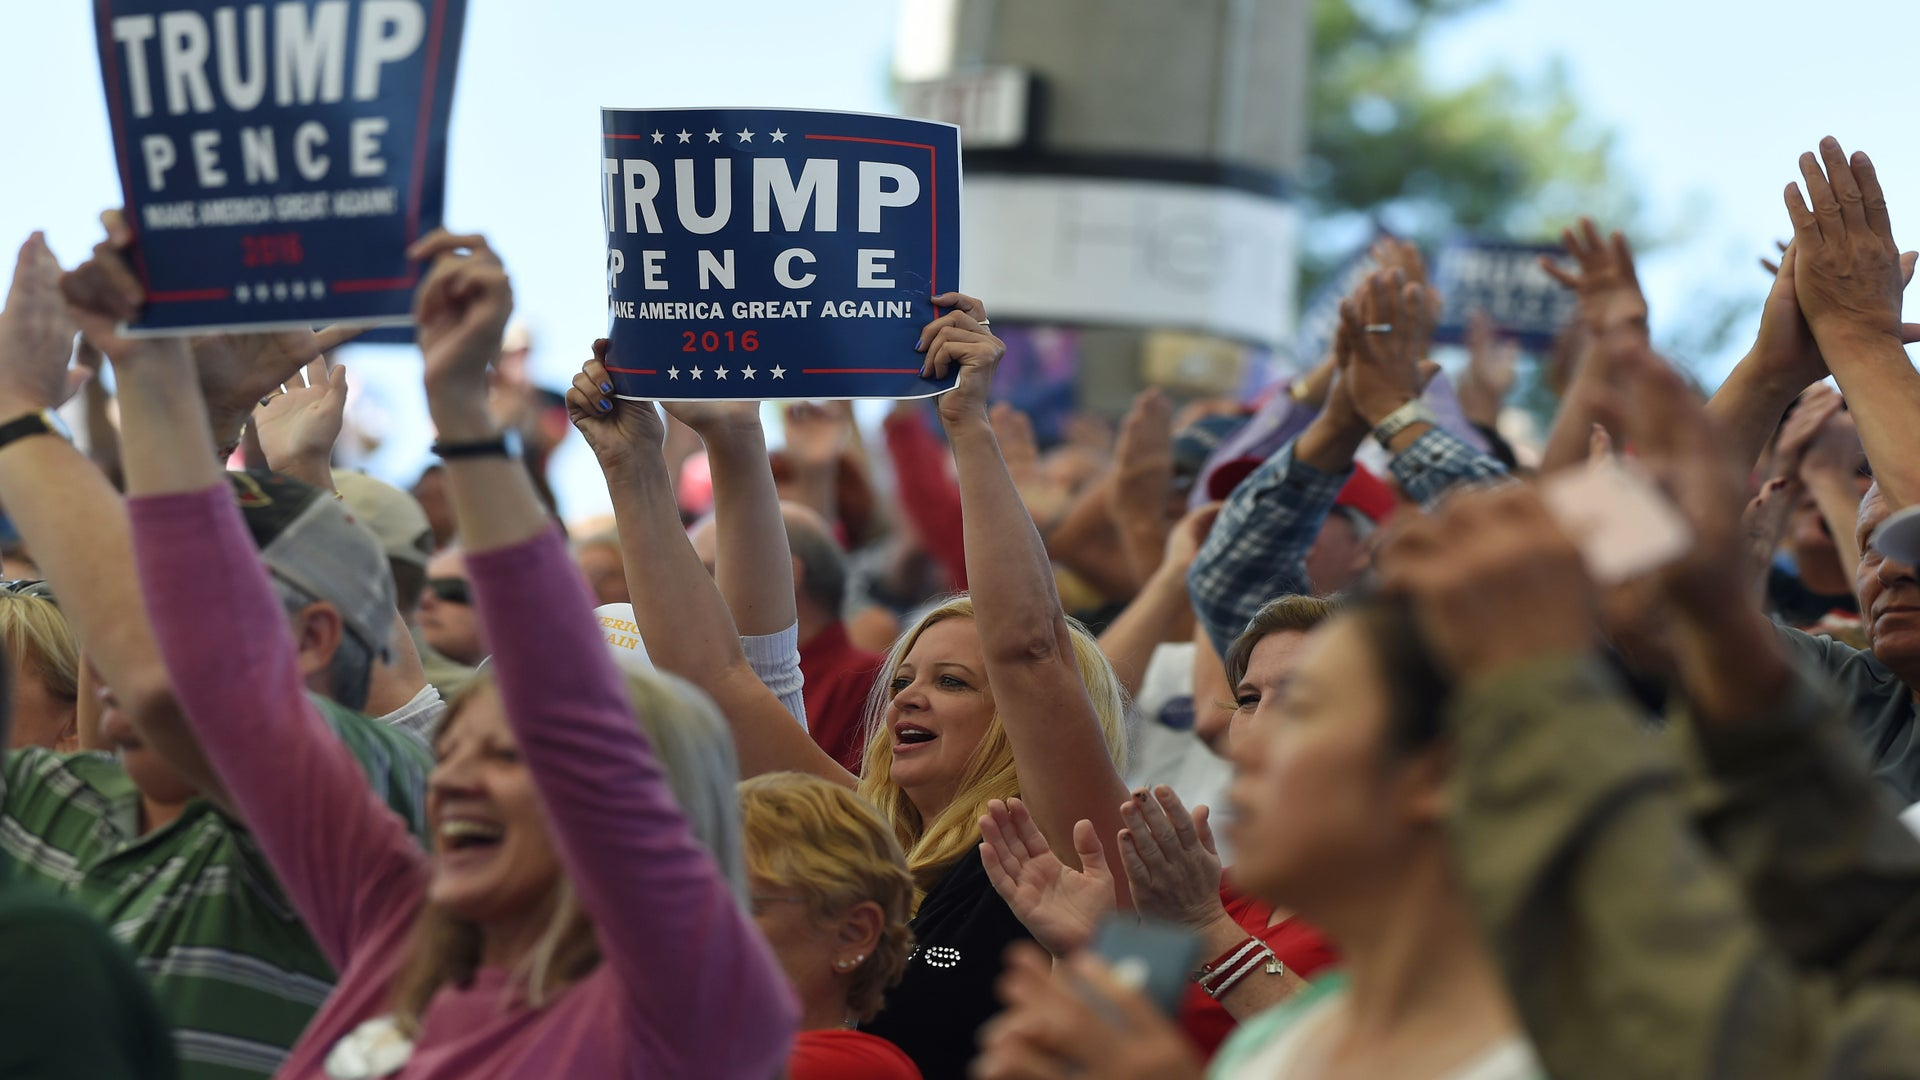 GOP Shows That White Women 'Trump' All Others